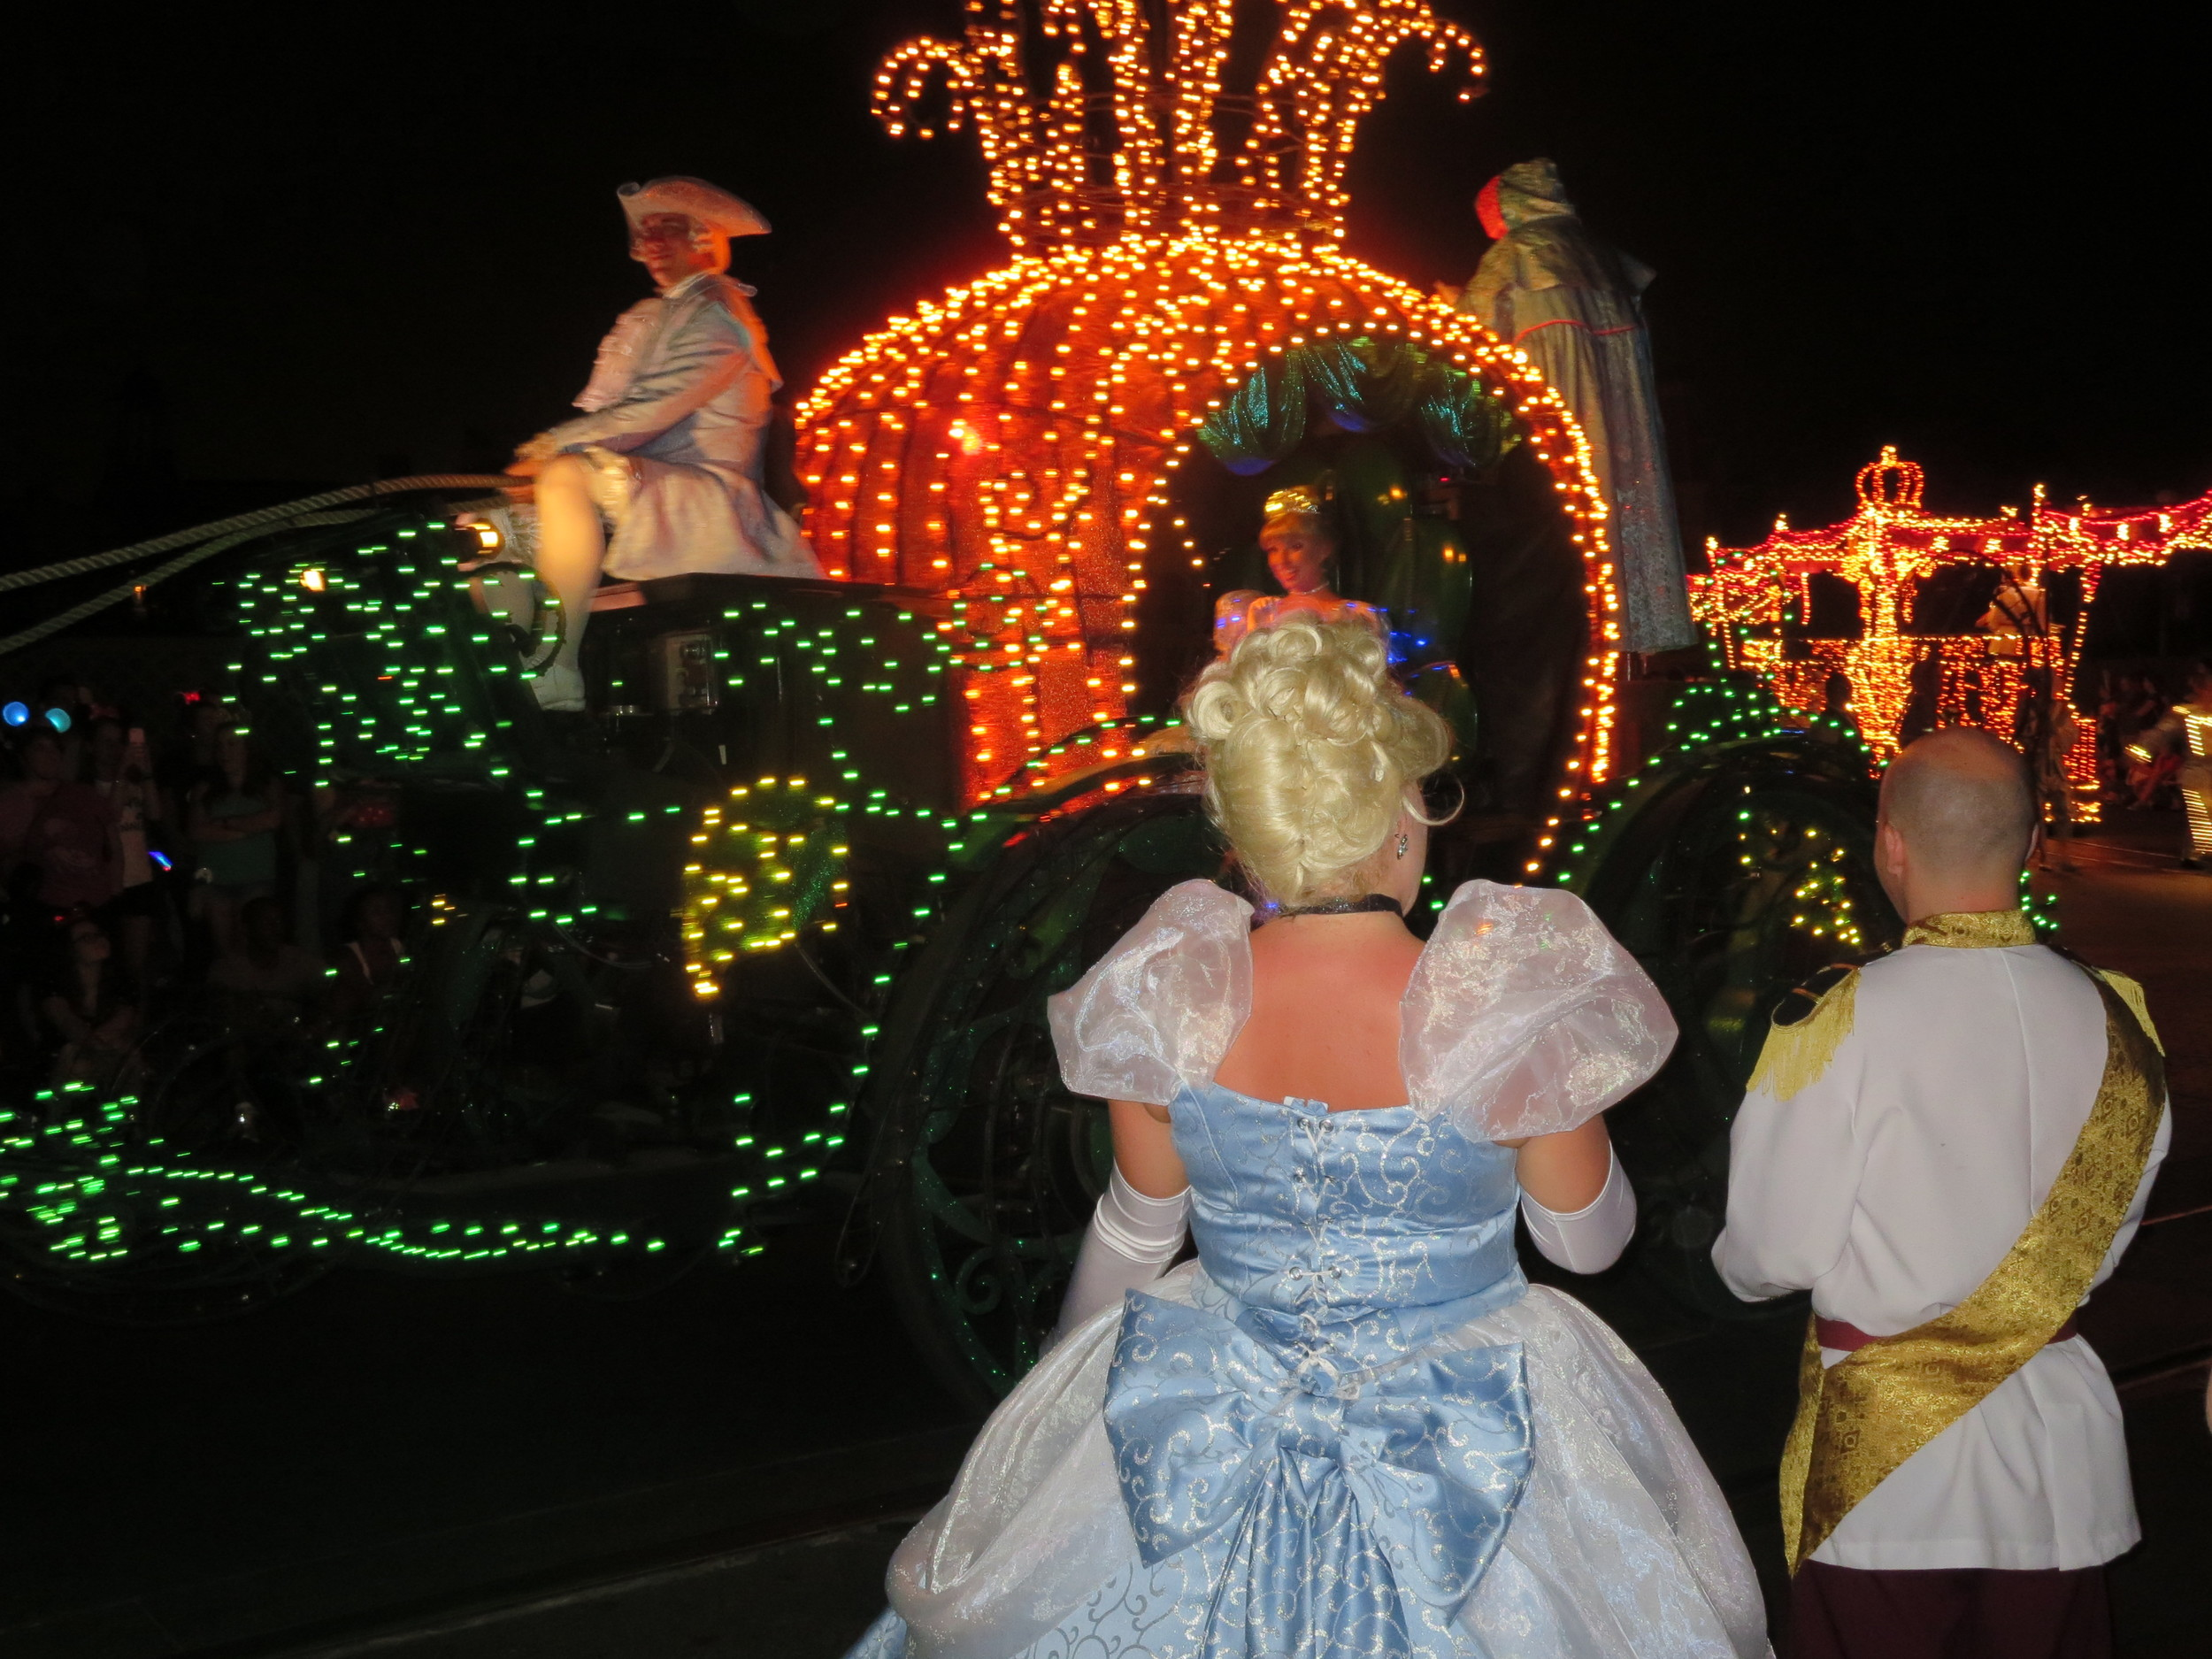 Cinderella in the Electrical Light Parade with guests showing their Disney Side